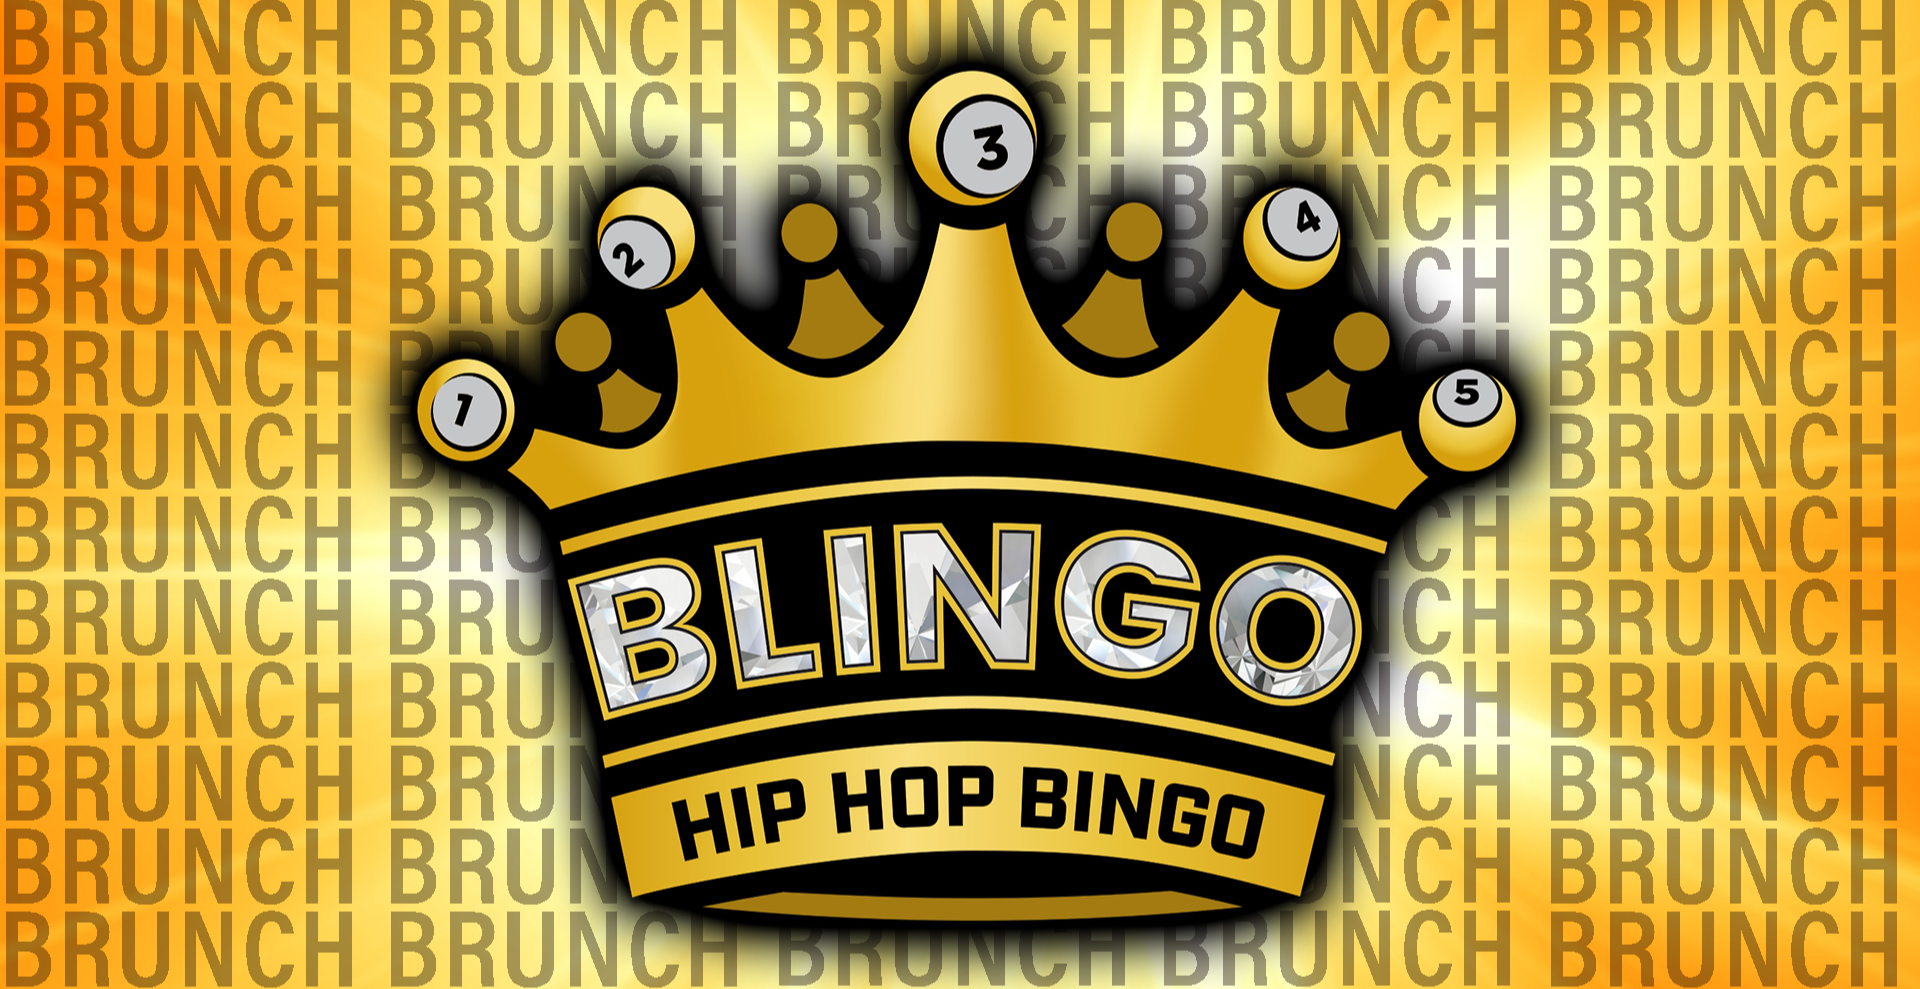 Blingo Bingo Brunch